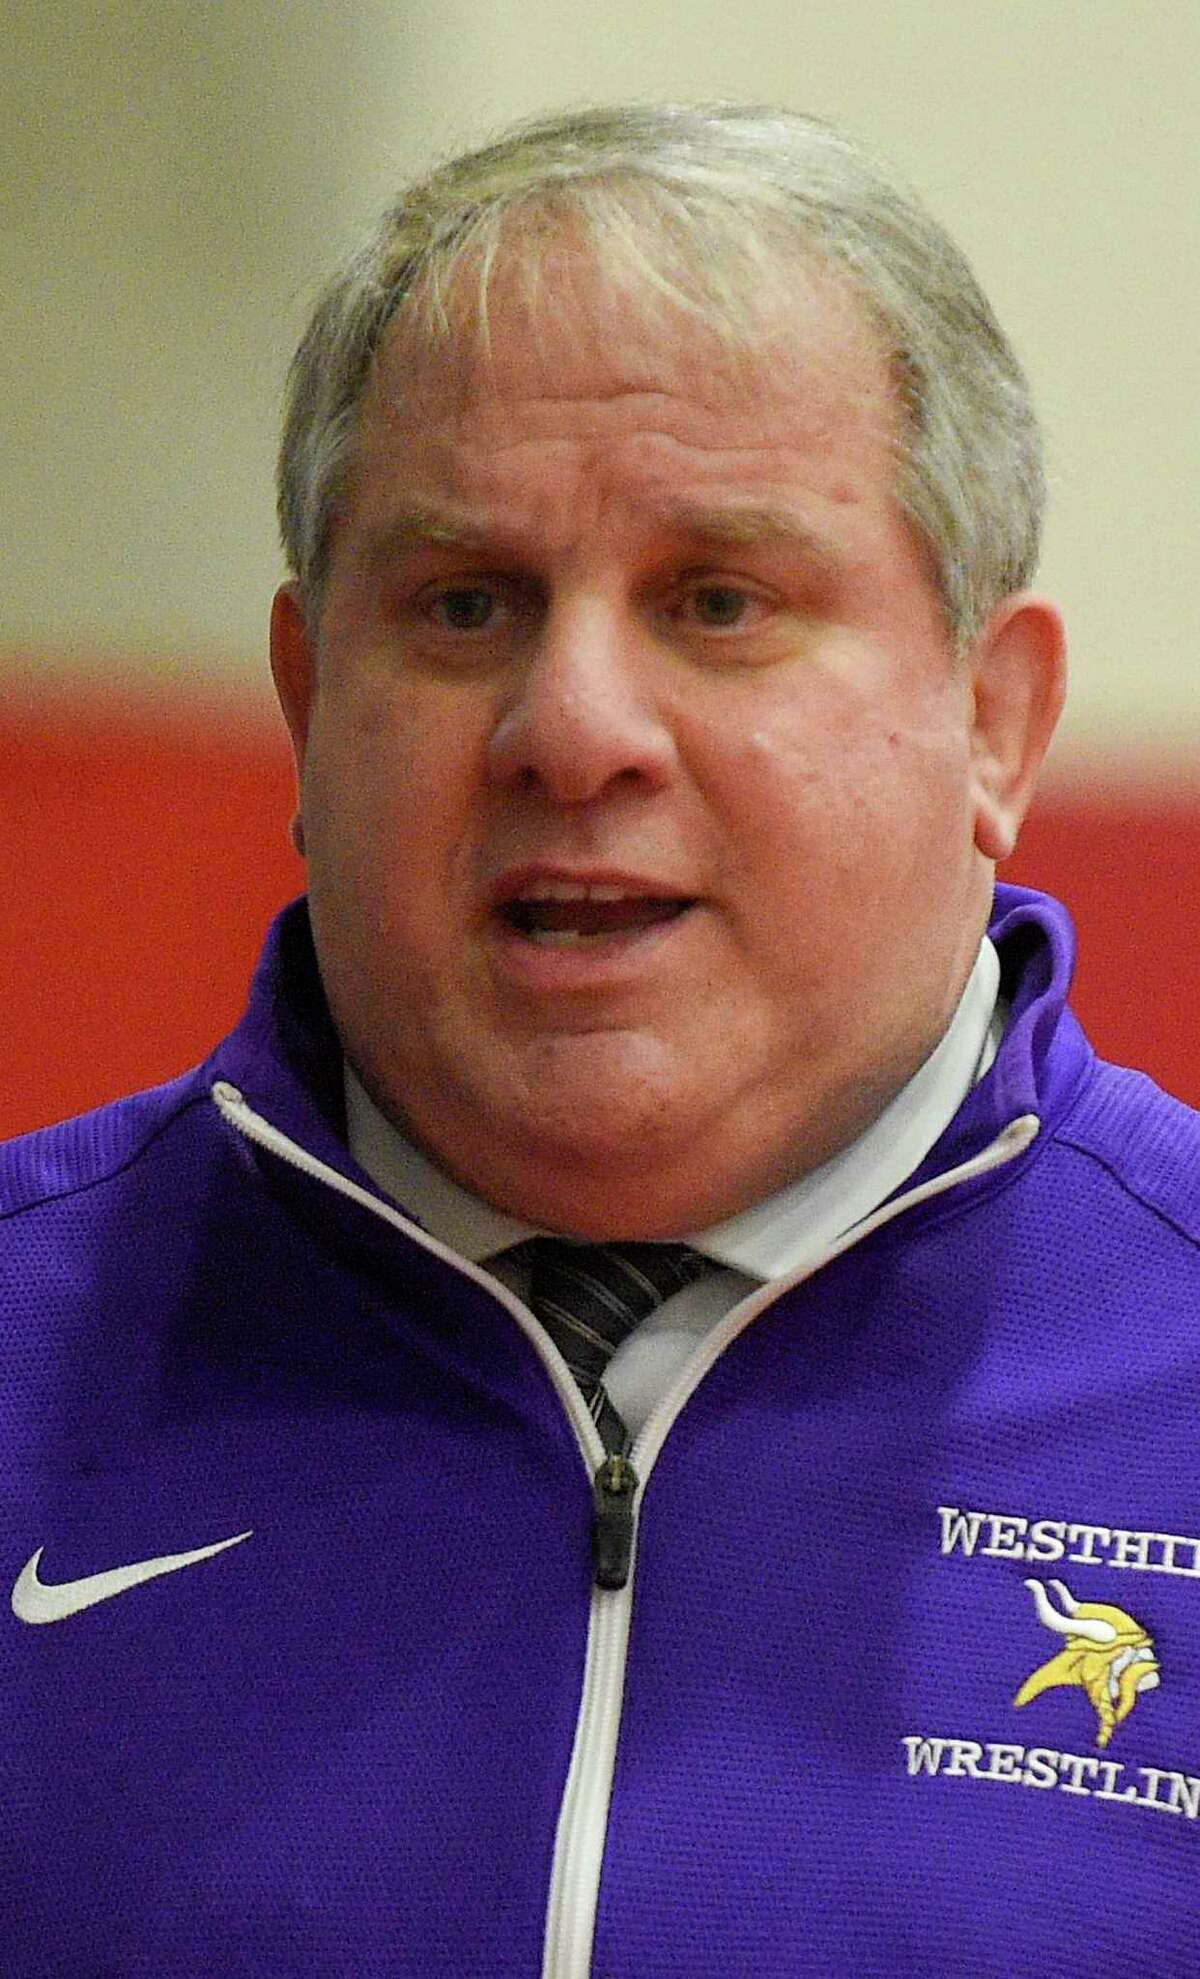 Westhill coach Mike Gigala in a boys wrestling match at Greenwich High School on Jan. 8, 2020 in Greenwich. Conn.